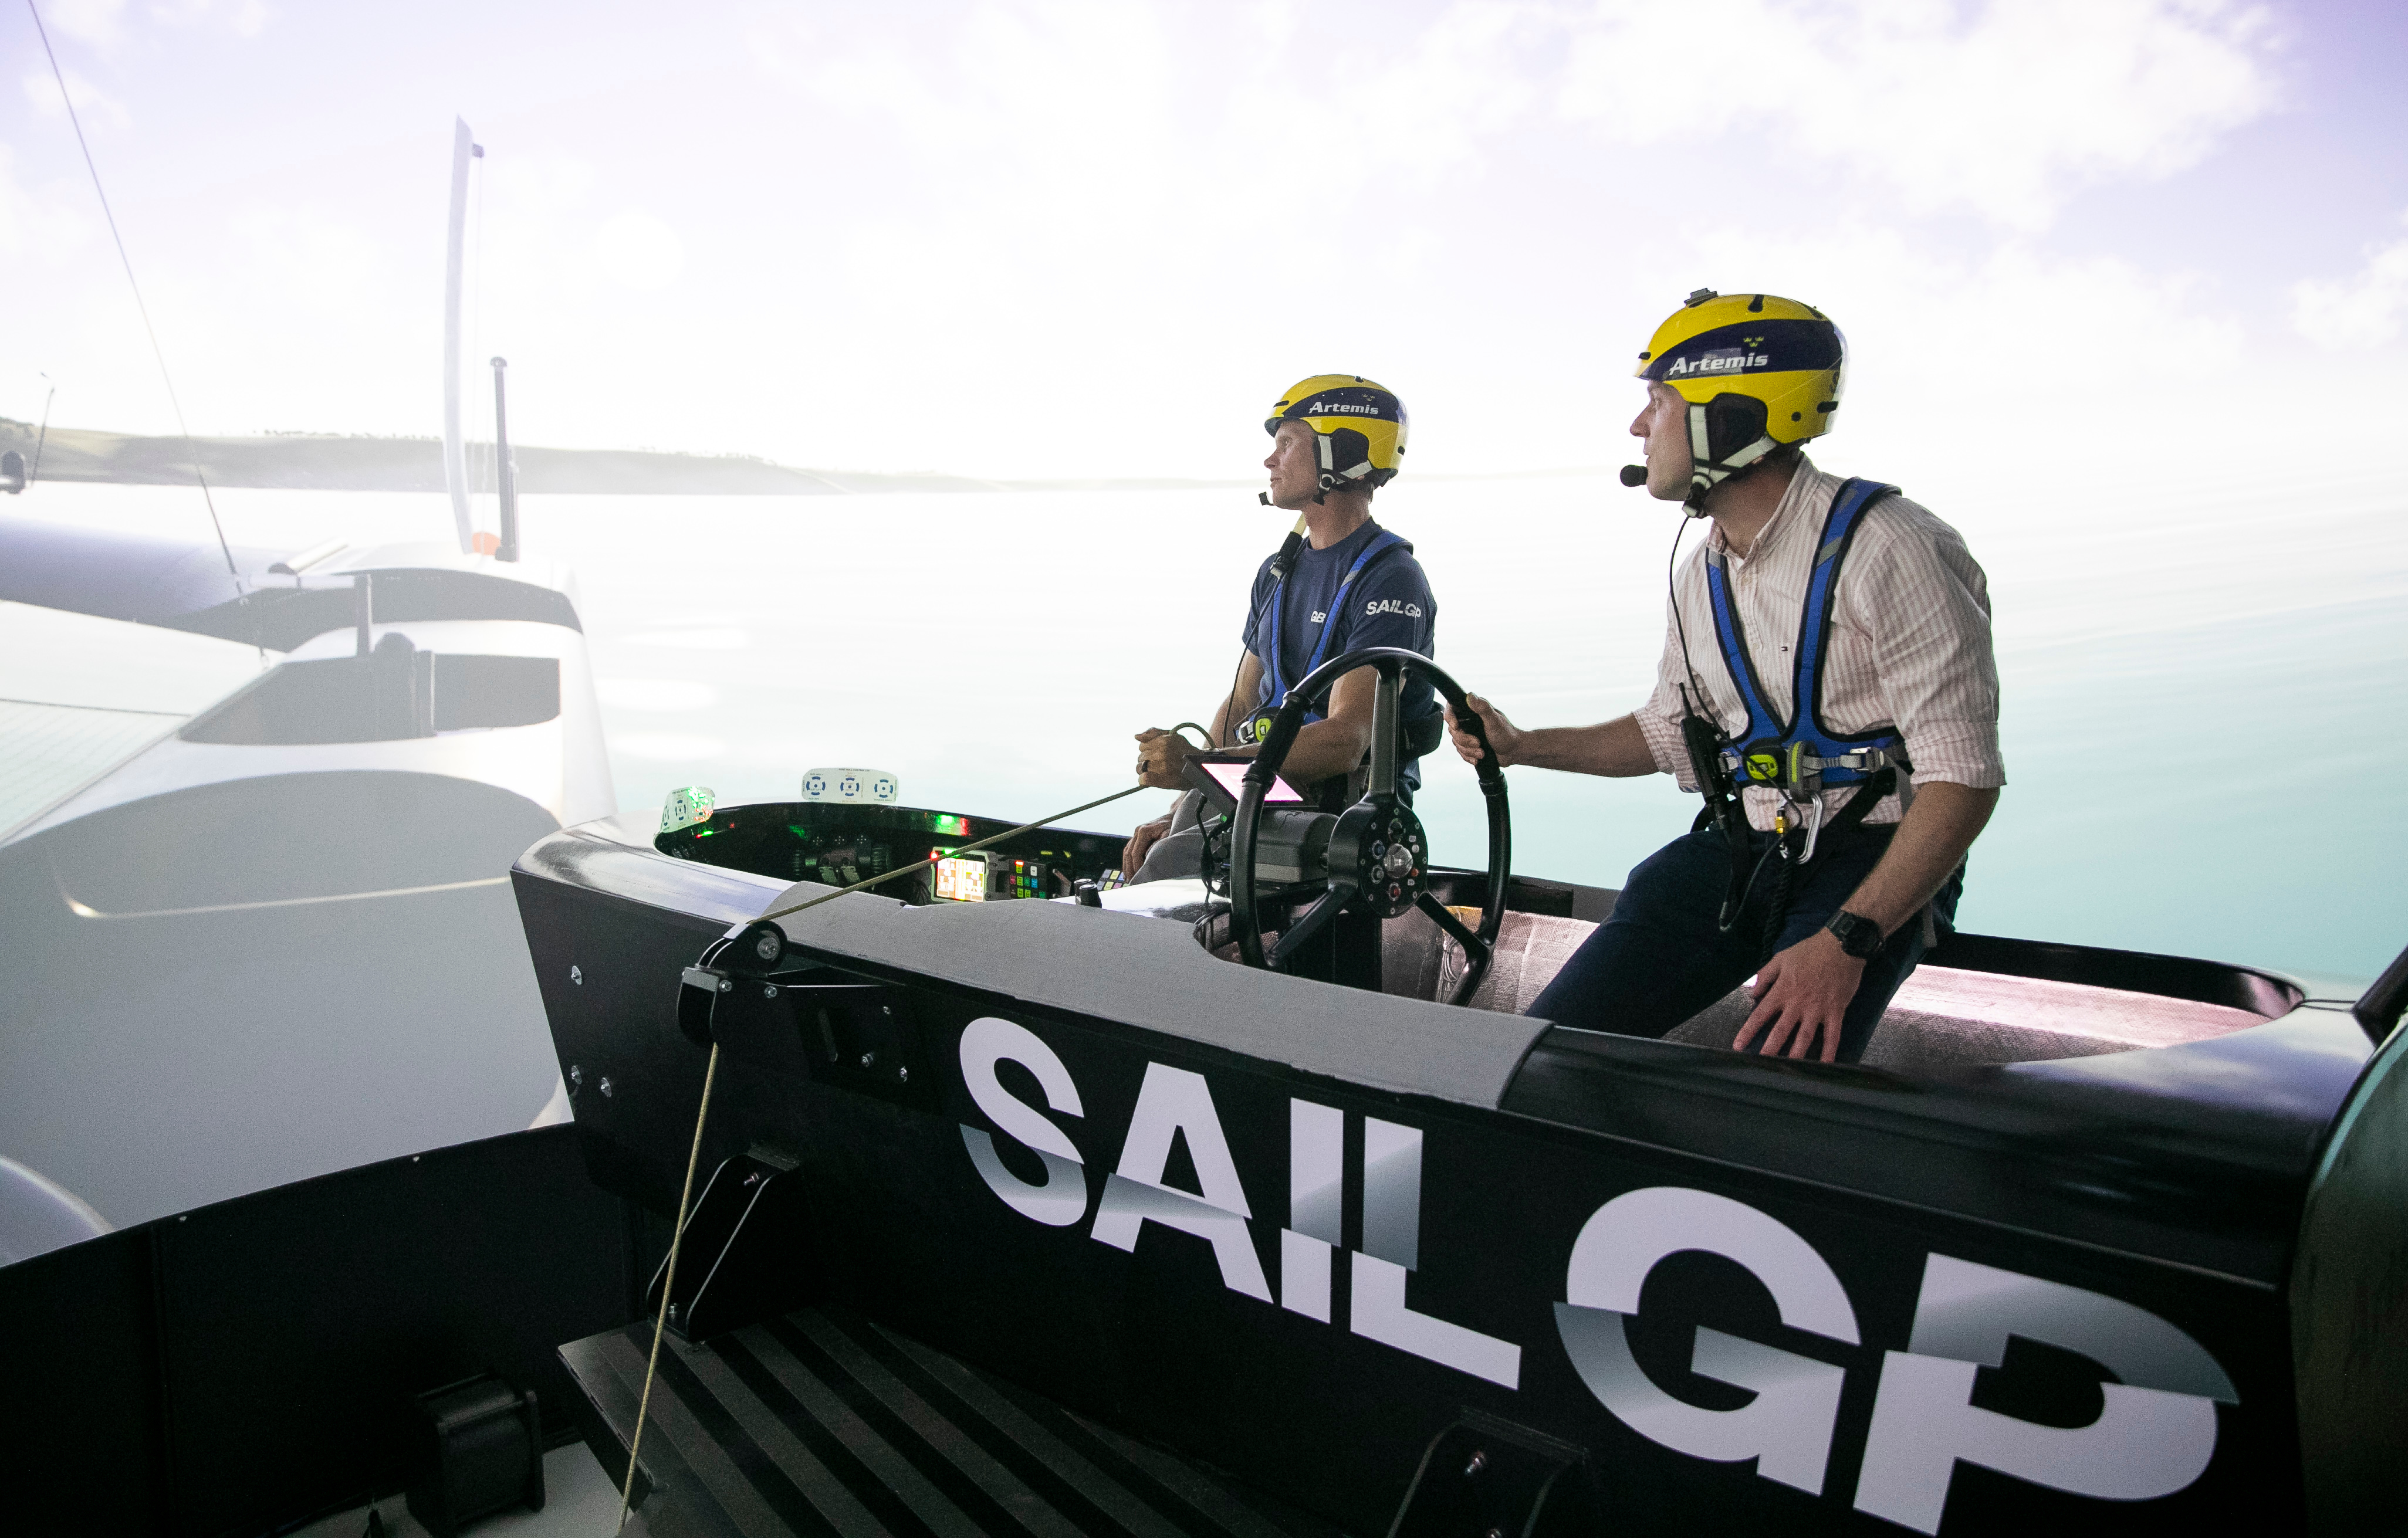 Hands on with the incredible SailGP simulator